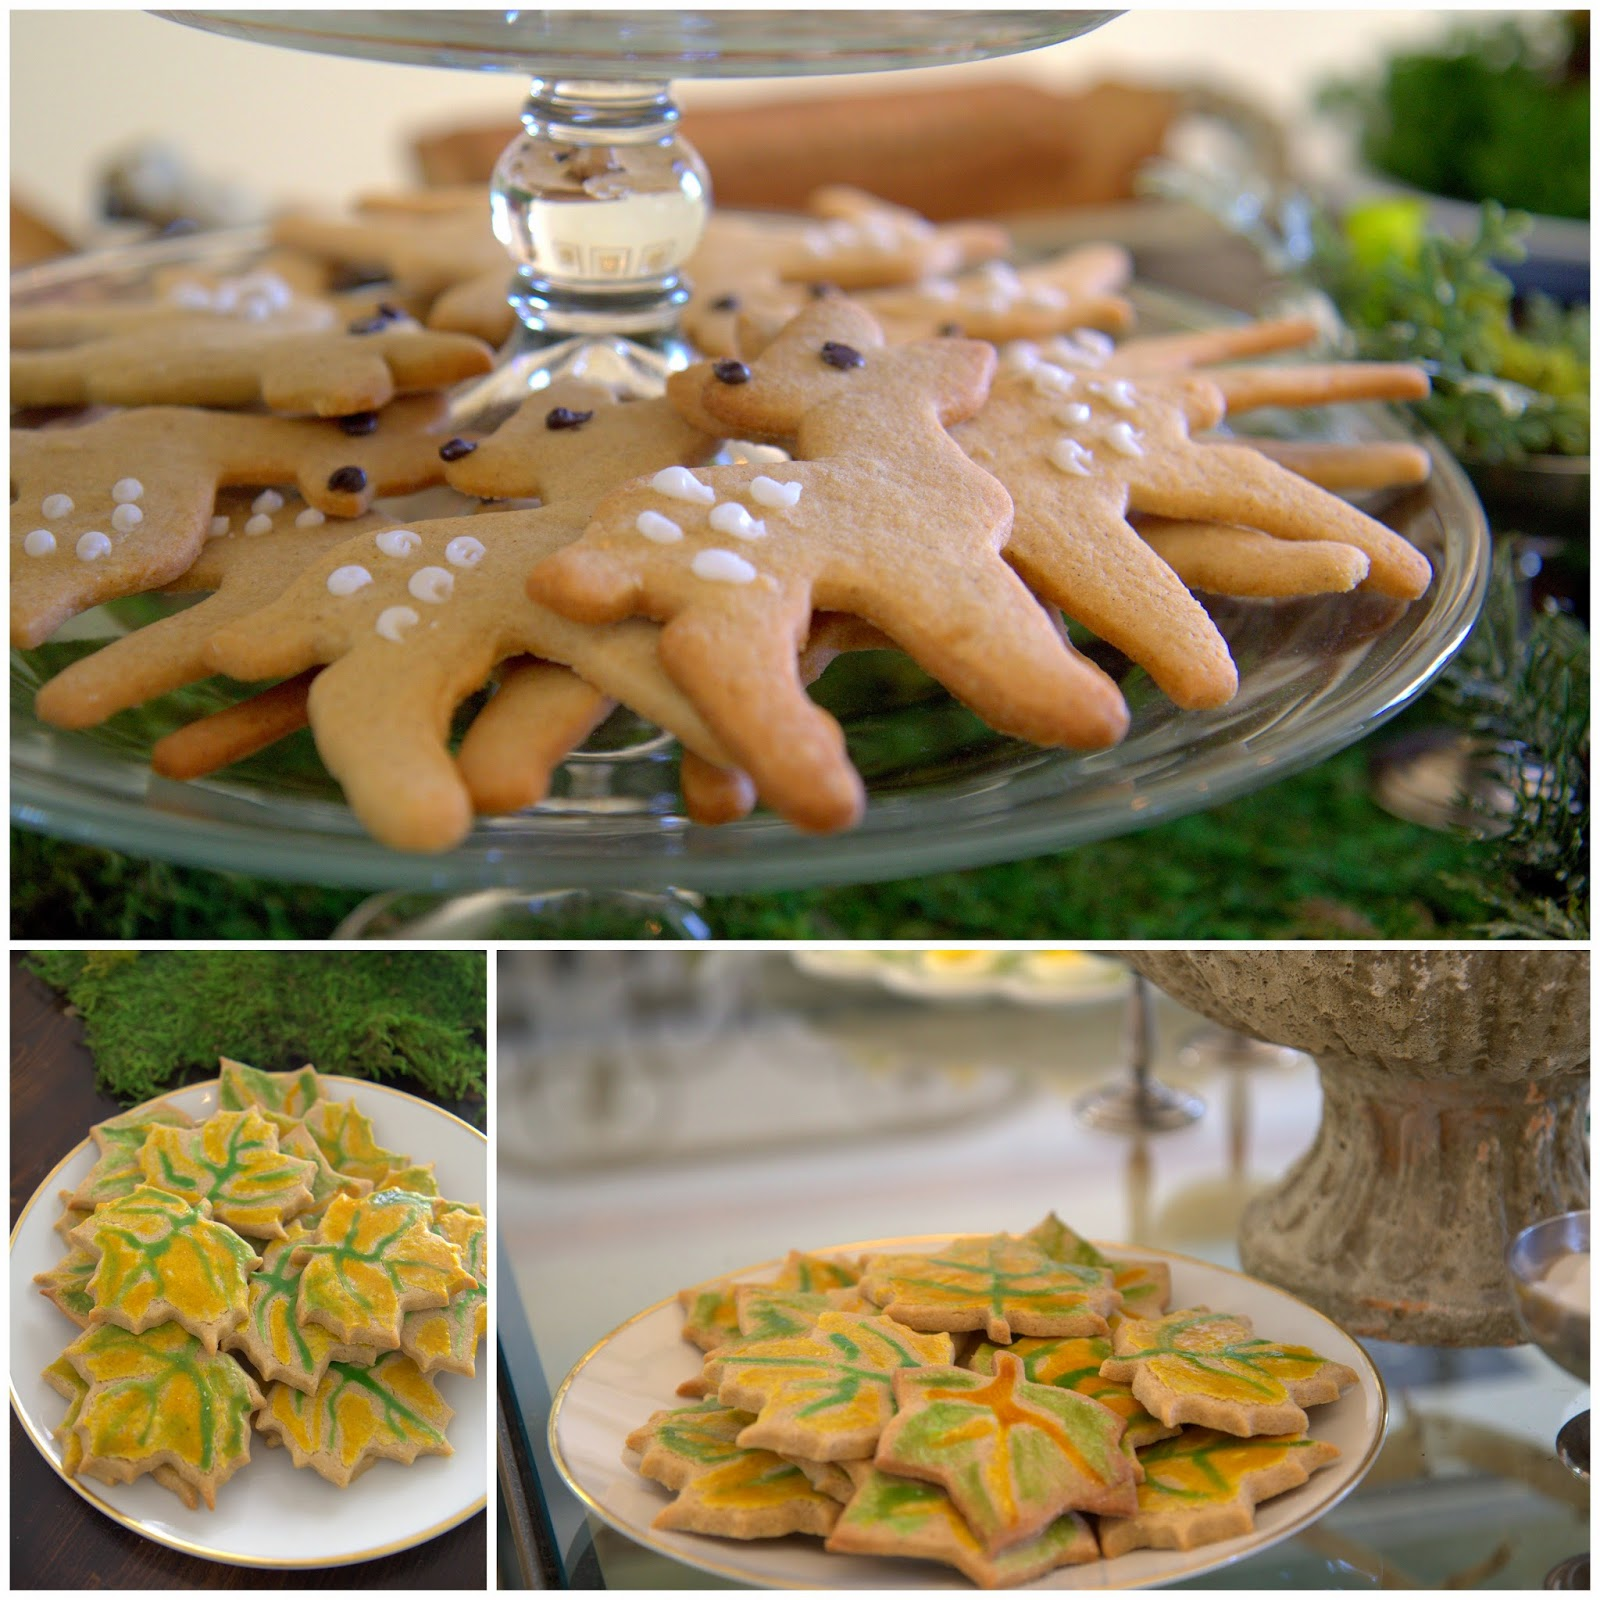 Woodland Party; Deer cookies and forest leaf cookies; dessert, party food: Nora's Nest